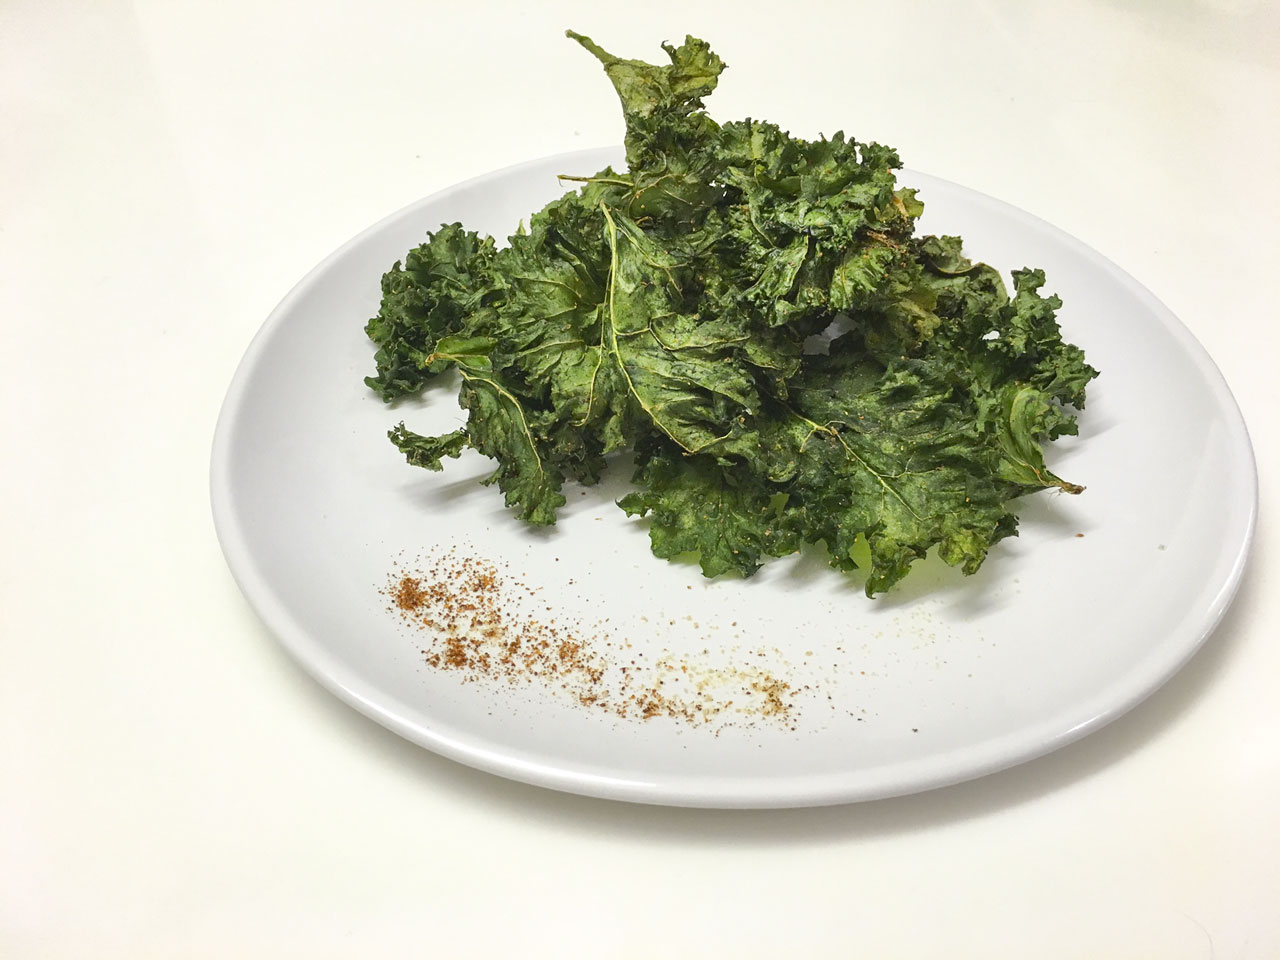 Kale chips seasoned with chili spice on a plate